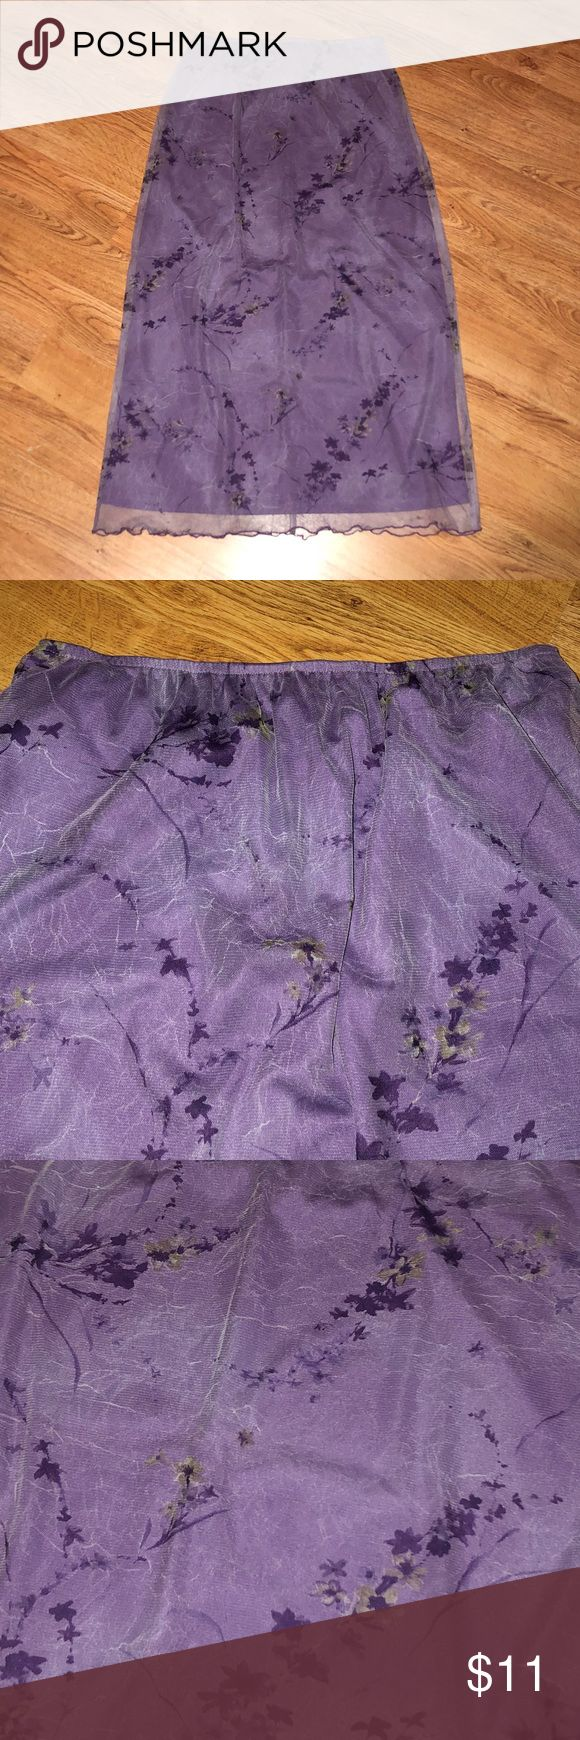 """Two Layer Floral Print Maxi Skirt ~Worn a few times, EUC! ~Approx length 36"""". ~Full elastic waist. ~Underskirt is solid purple. ~Sheer mesh overlay has a floral print and a crinkled look. ~Purple lettuce edging on the overlay. ~The overlay is about 1-1/2"""" longer than the underskirt. ~Center seam in back. ~Reasonable offers welcome. ~Thanks for visiting my closet! Sophisticates by Jonathan Martin Skirts Maxi"""